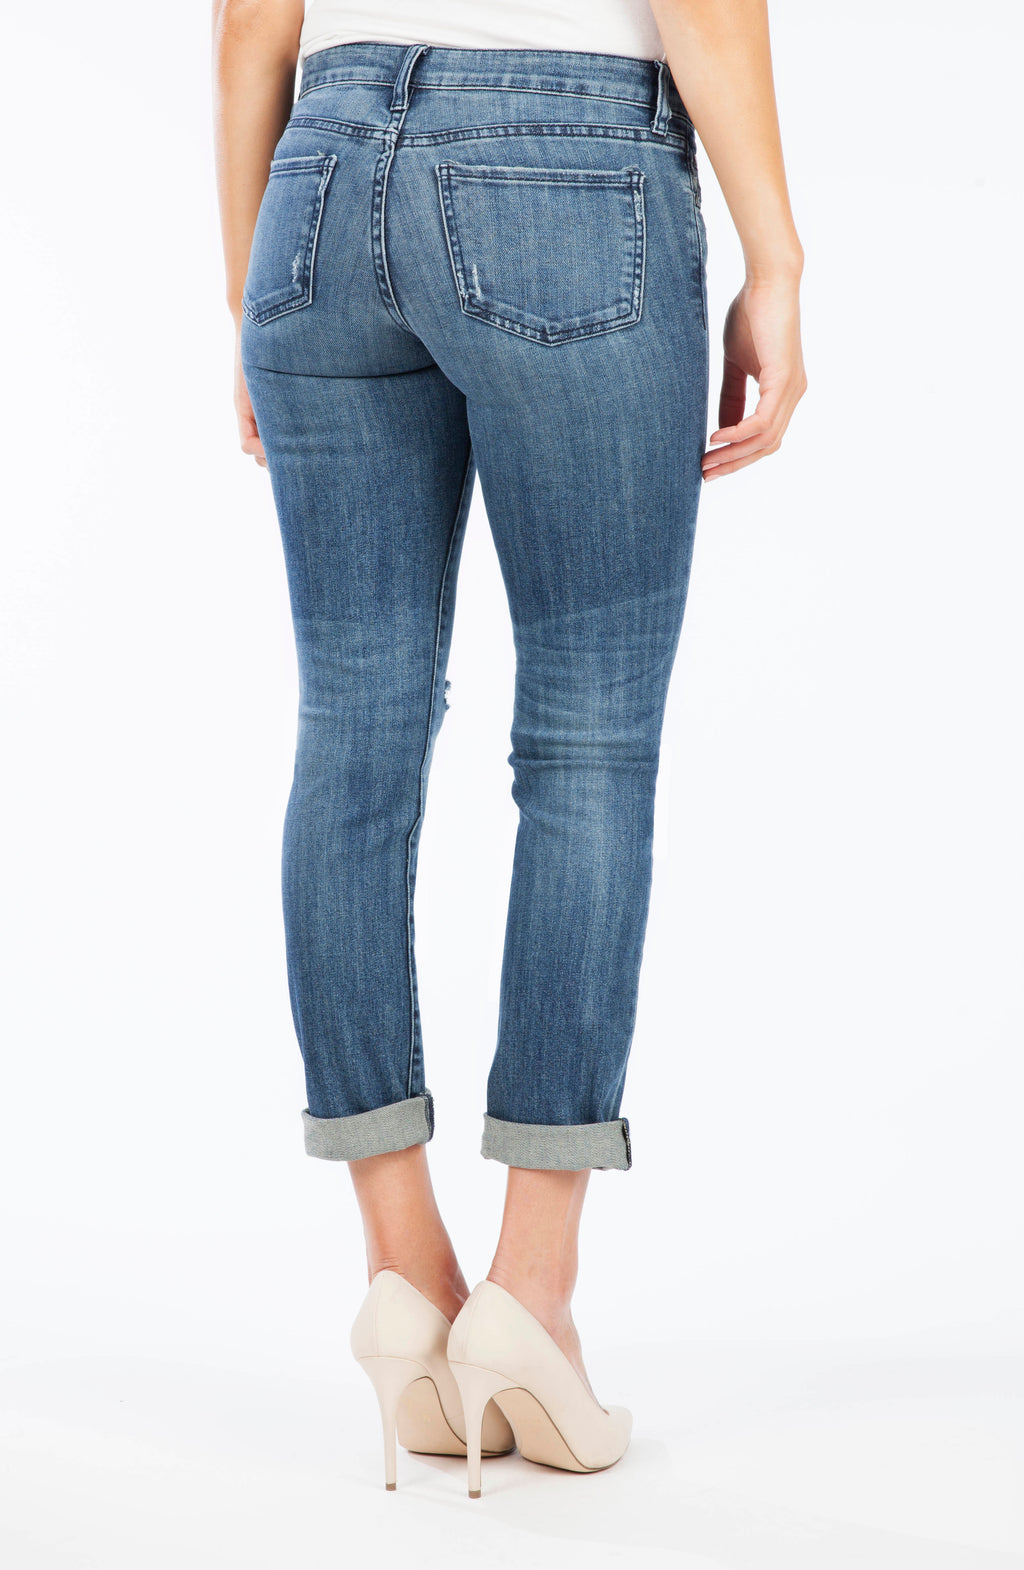 Catherine Boyfriend Denim - Revival Wash